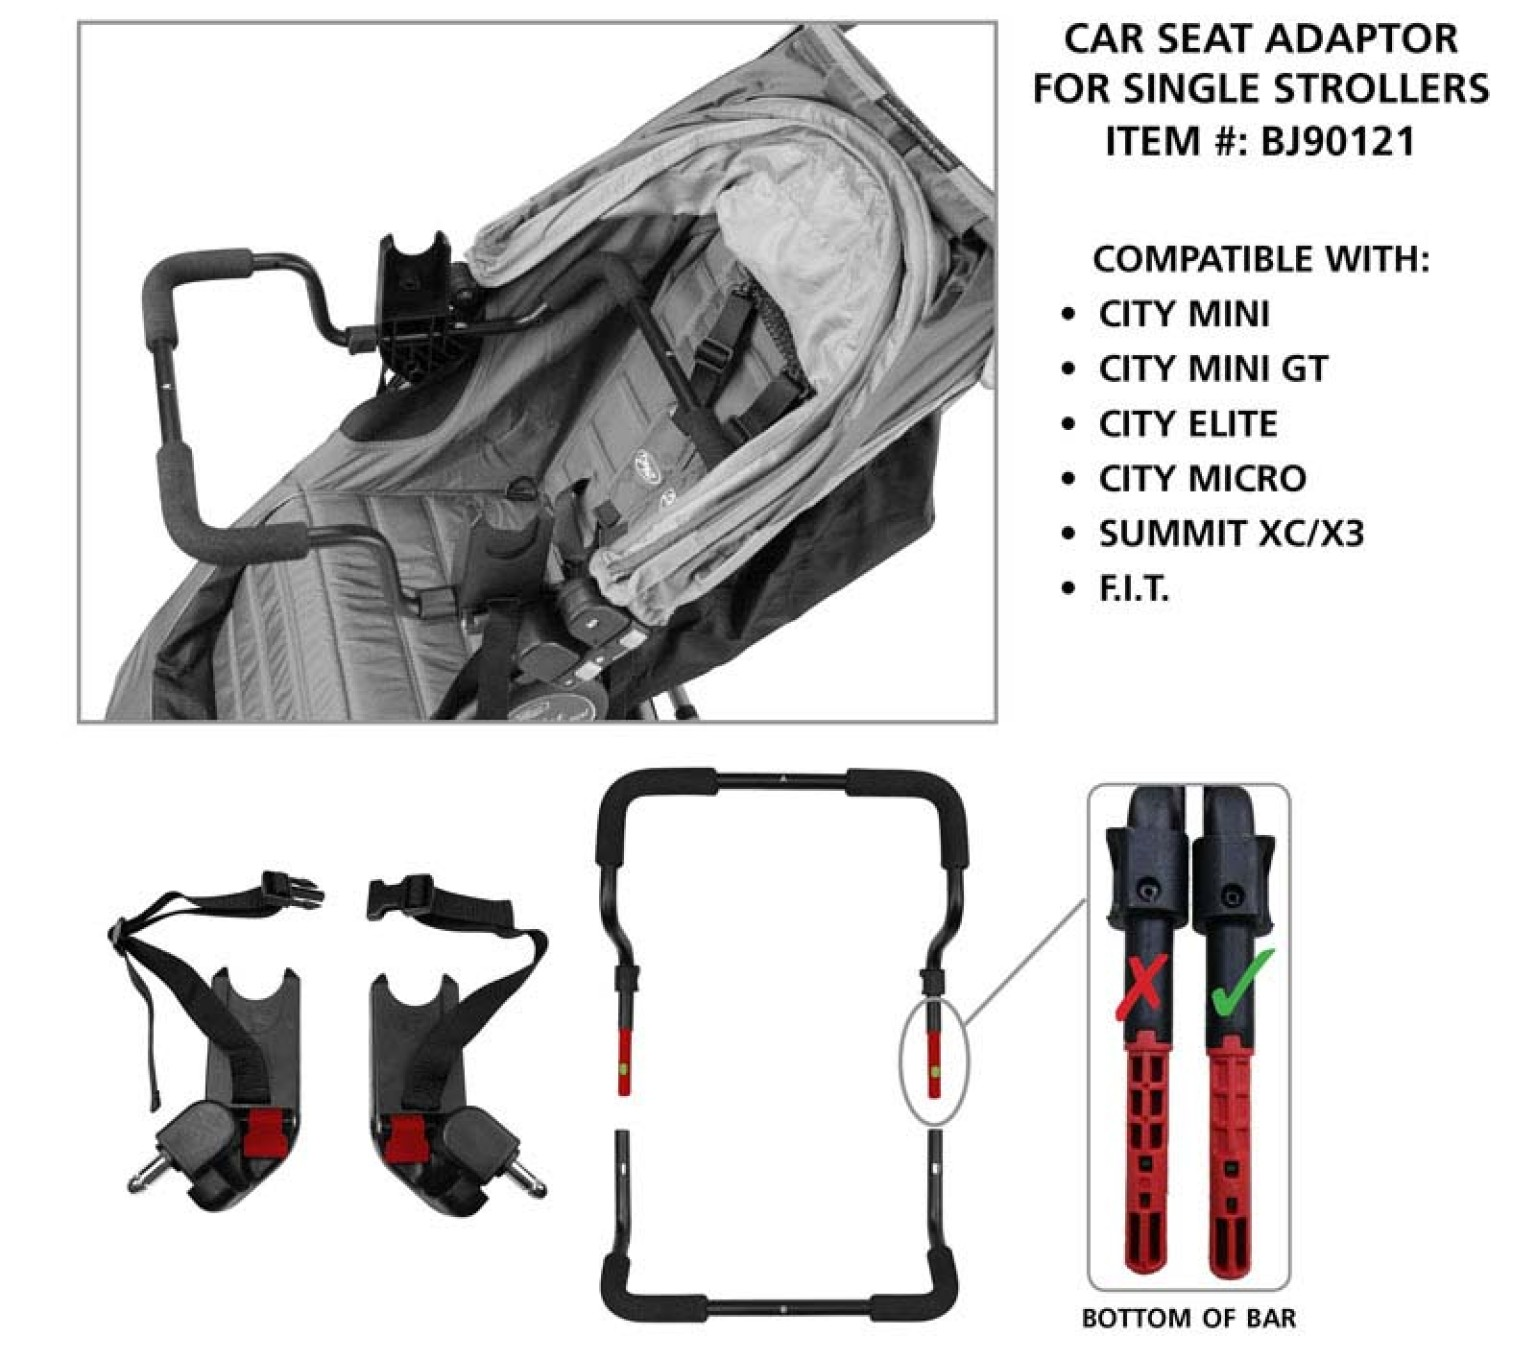 baby jogger car seat adaptors for strollers recalled photos huffpost. Black Bedroom Furniture Sets. Home Design Ideas